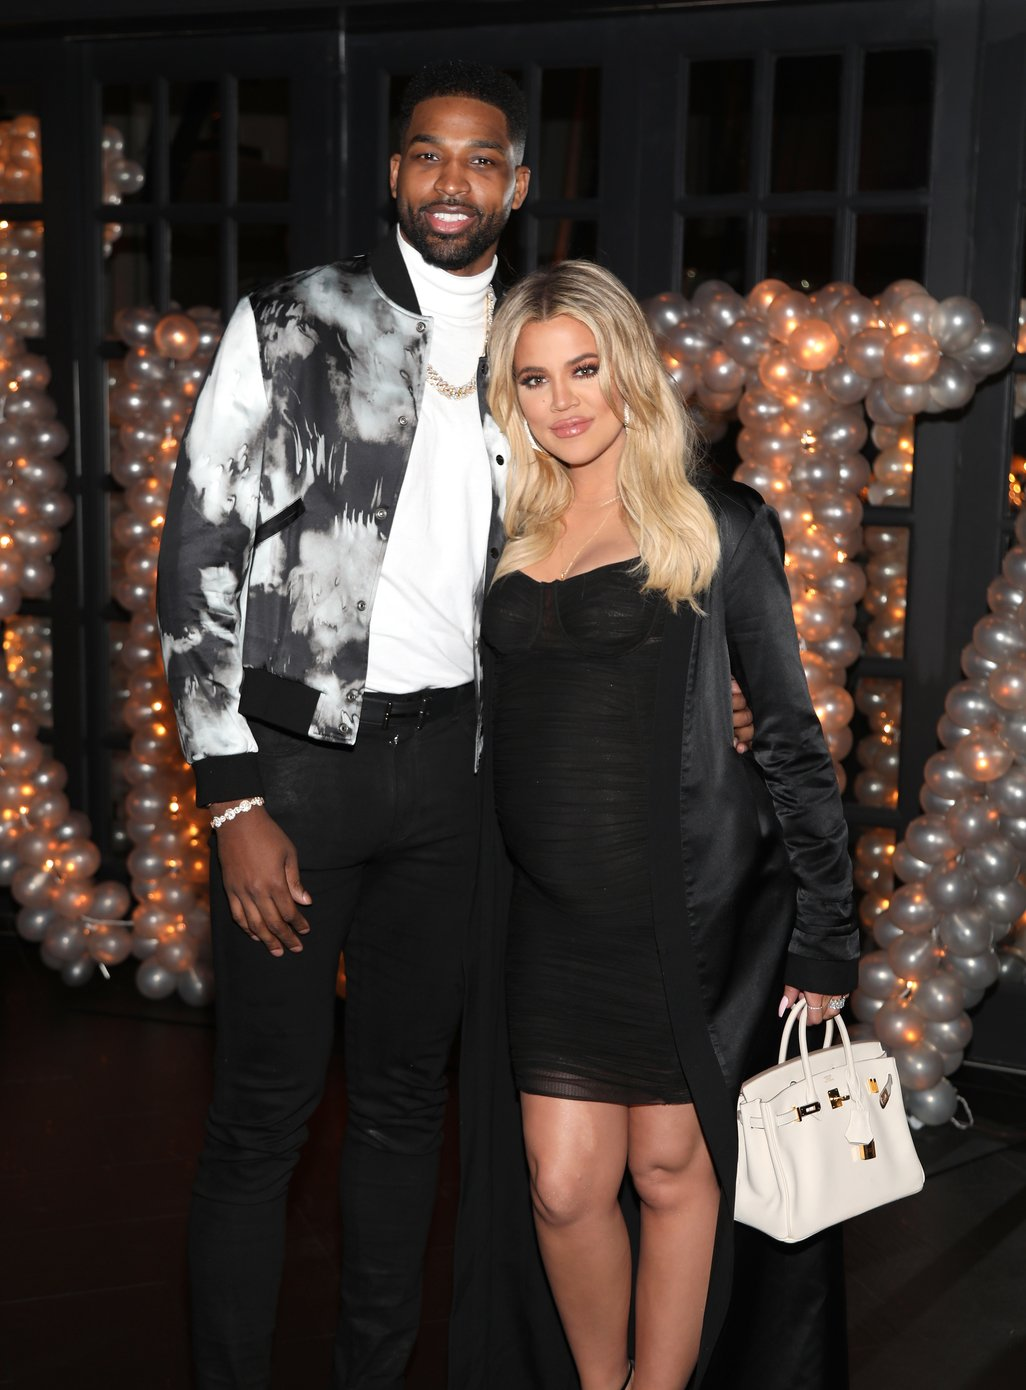 Tristan Thompson and Khloe Kardashian celebrate Tristan Thompson's Birthday at Beauty & Essex on March 10, 2018 in Los Angeles, California | Photo: GettyImages